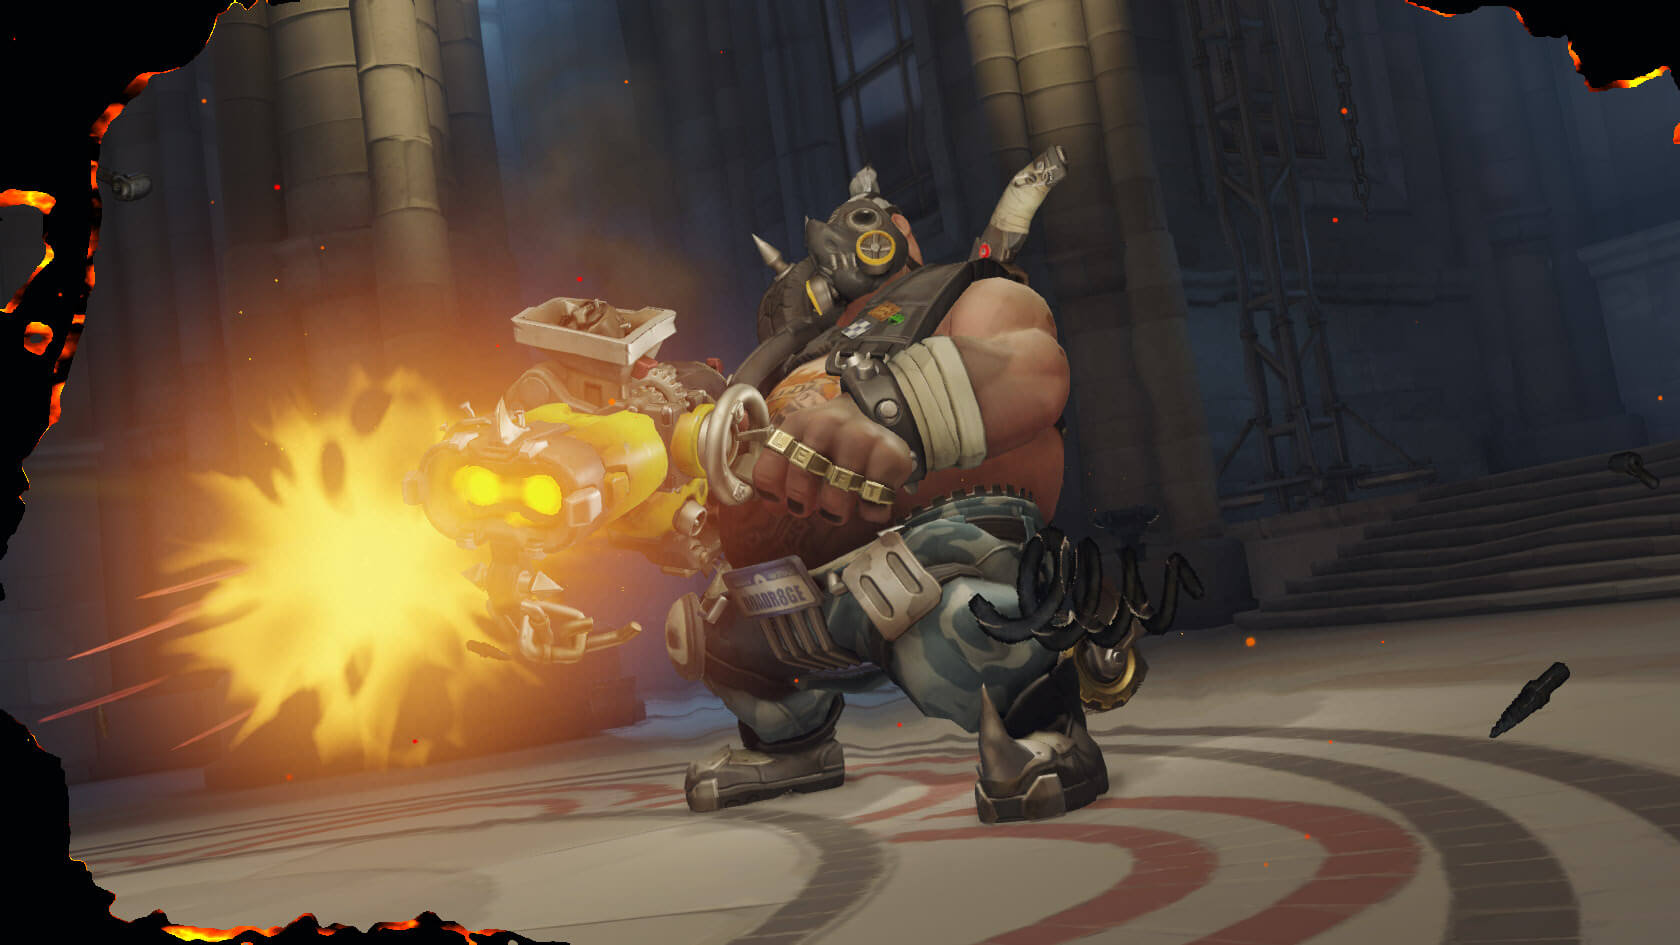 Overwatch Roadhog Shoot